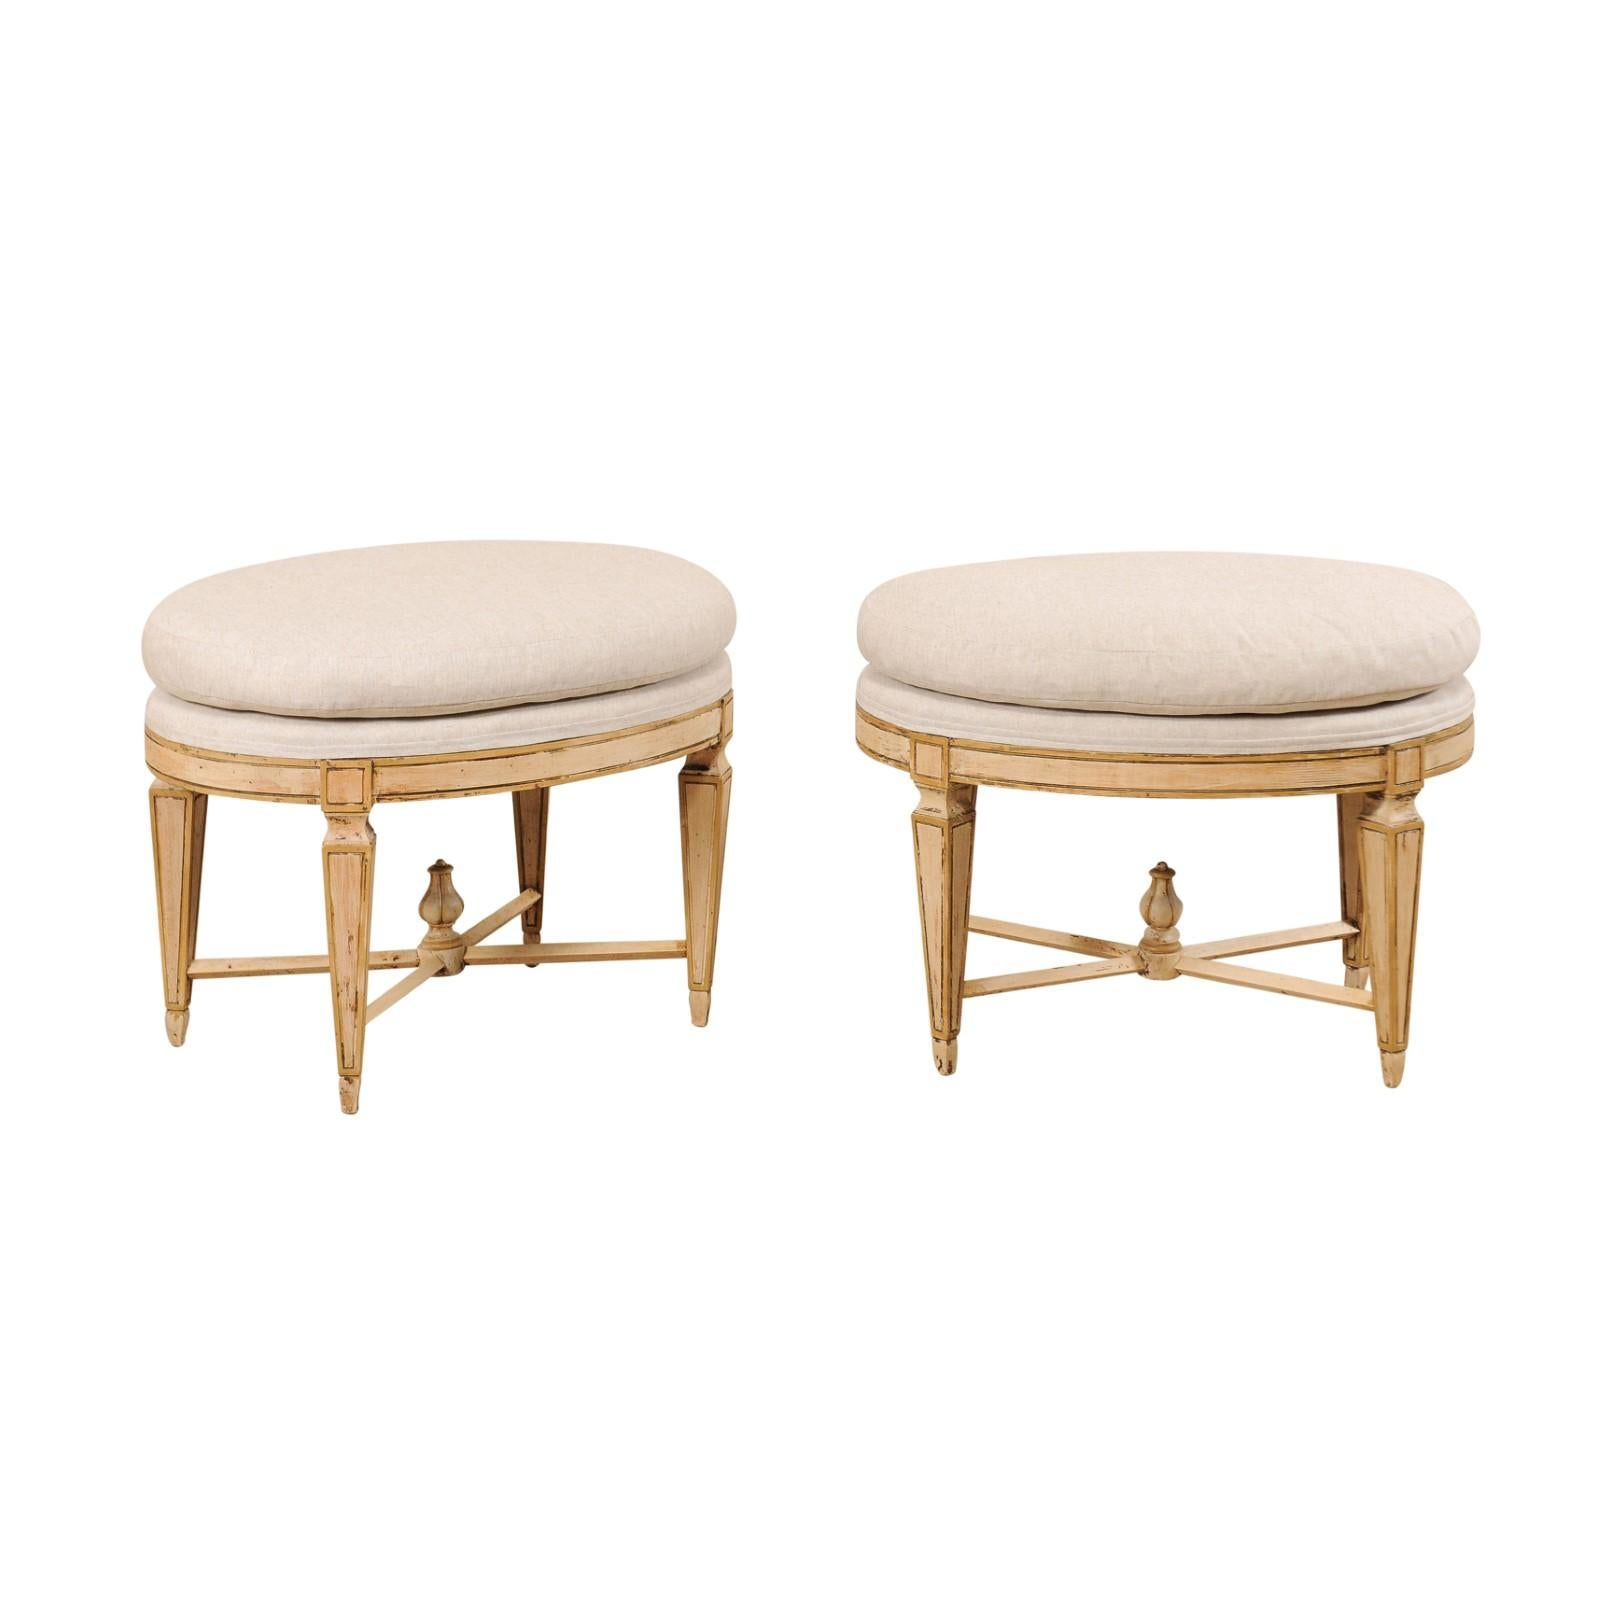 Pair of Italian Mid-Century Carved Wood Stools with Oval Shape